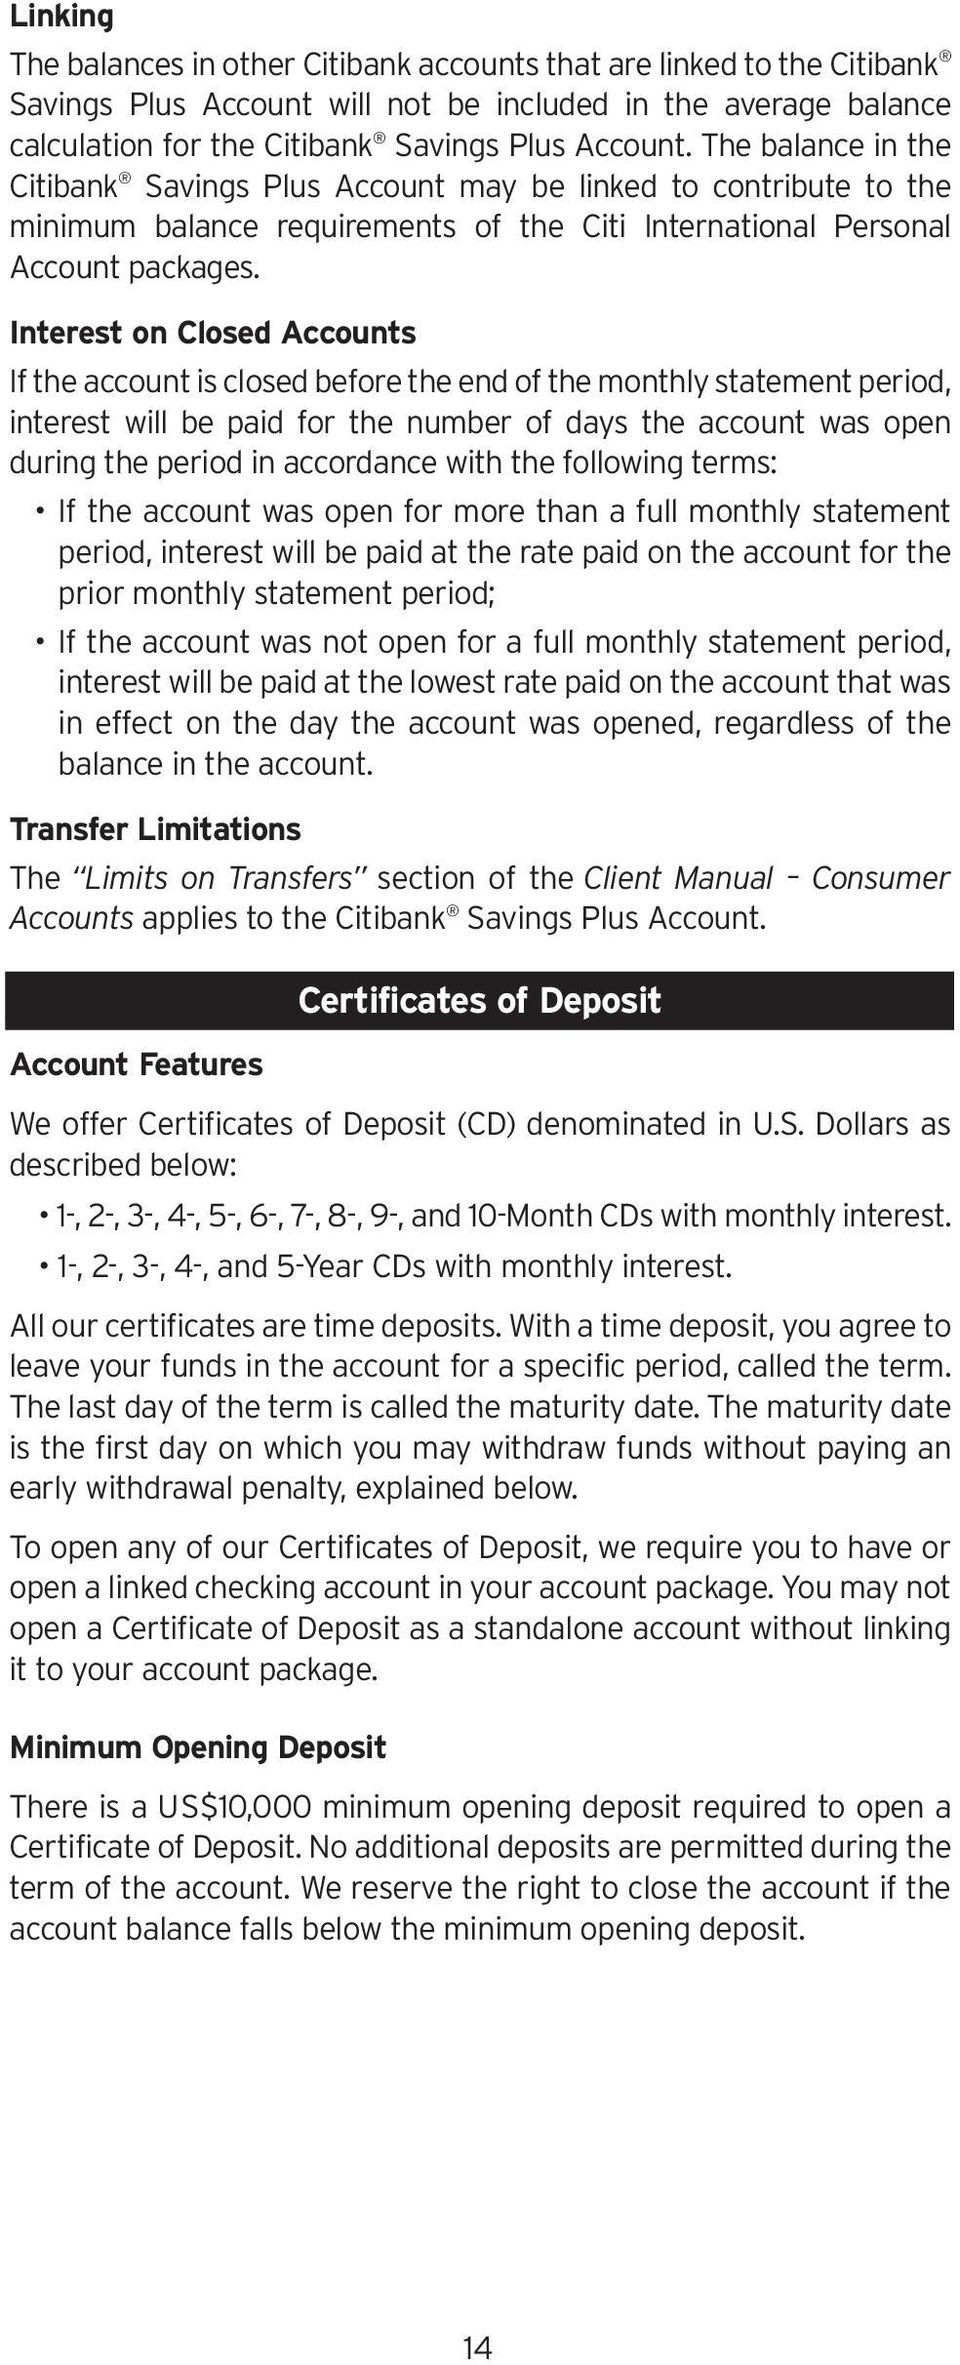 Interest on Closed Accounts If the account is closed before the end of the monthly statement period, interest will be paid for the number of days the account was open during the period in accordance